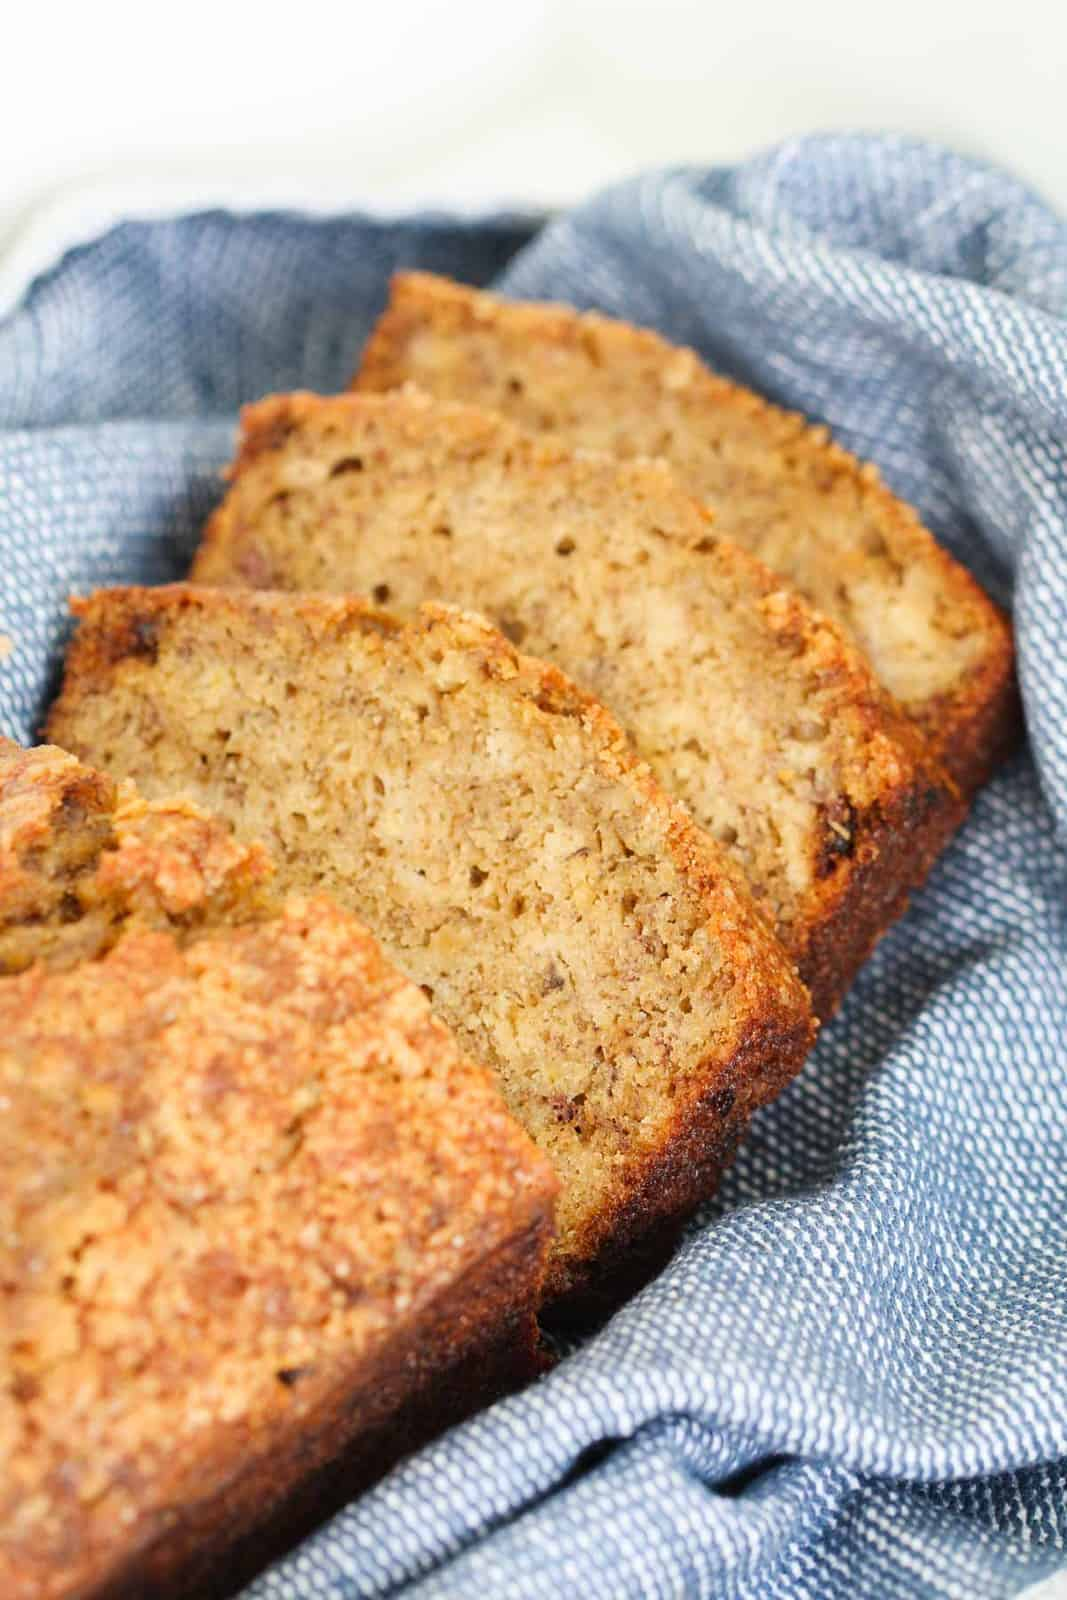 Slices of banana bread on a blue tea towel.